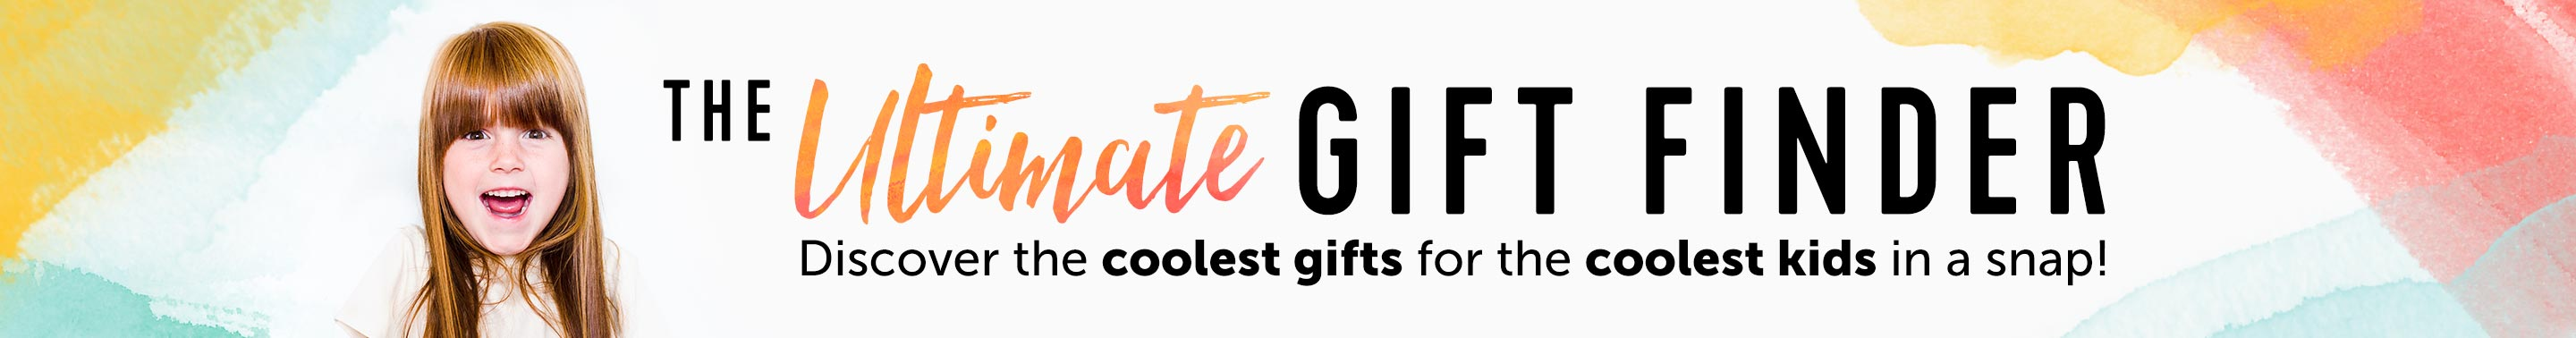 The Ultimate Gift Finder